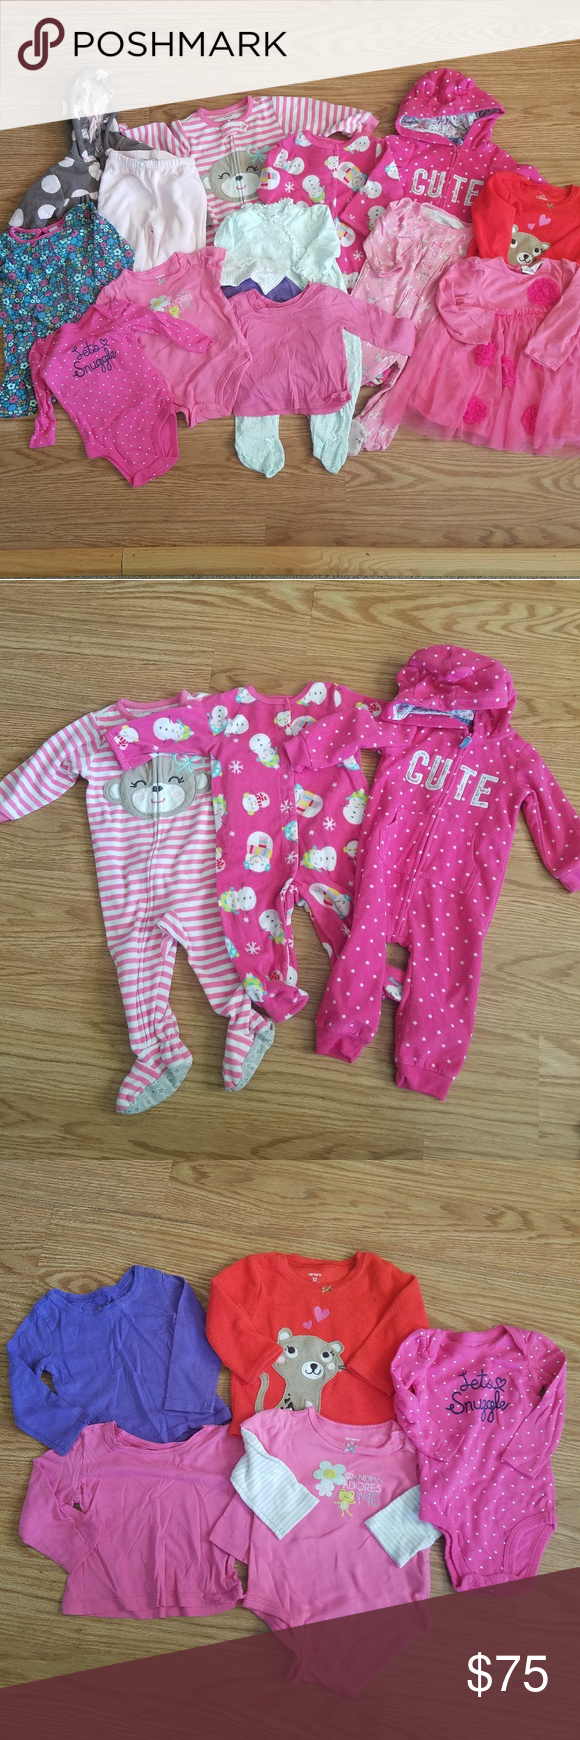 344932b8df4a Lot of Baby Girl Clothes 9 - 12 months in 2018